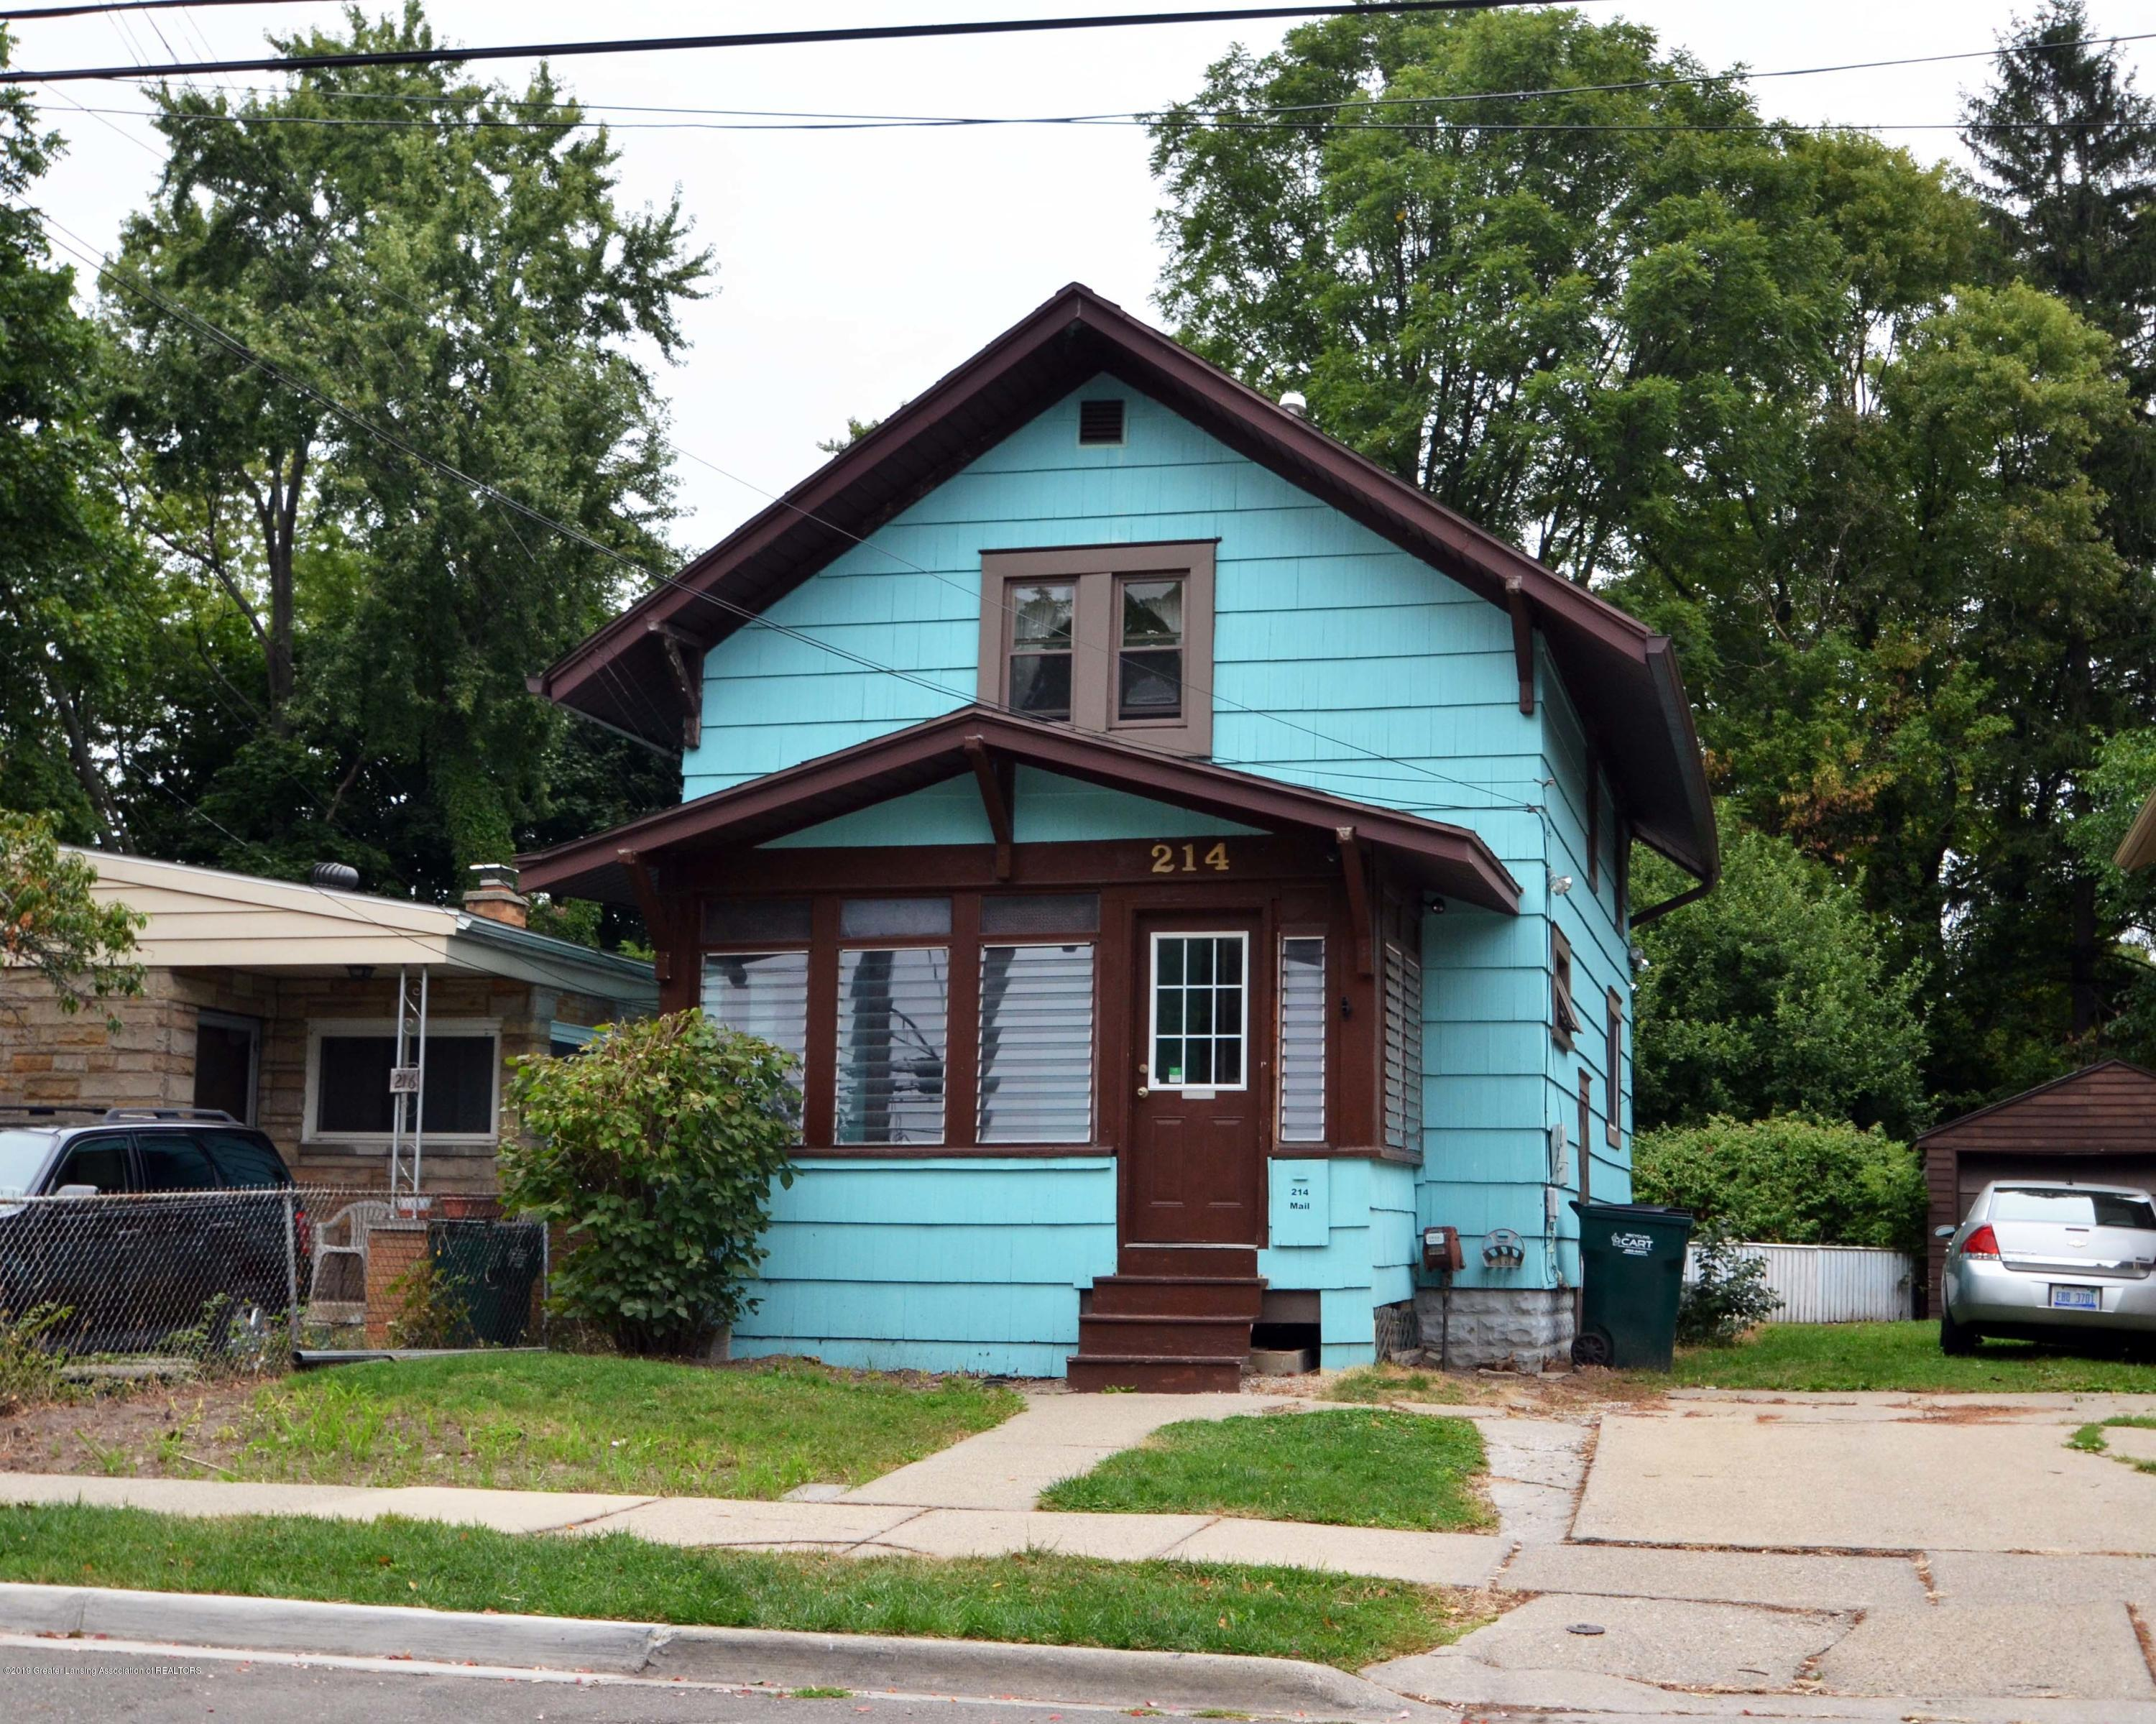 214 N Fairview Ave - 1Front - 1